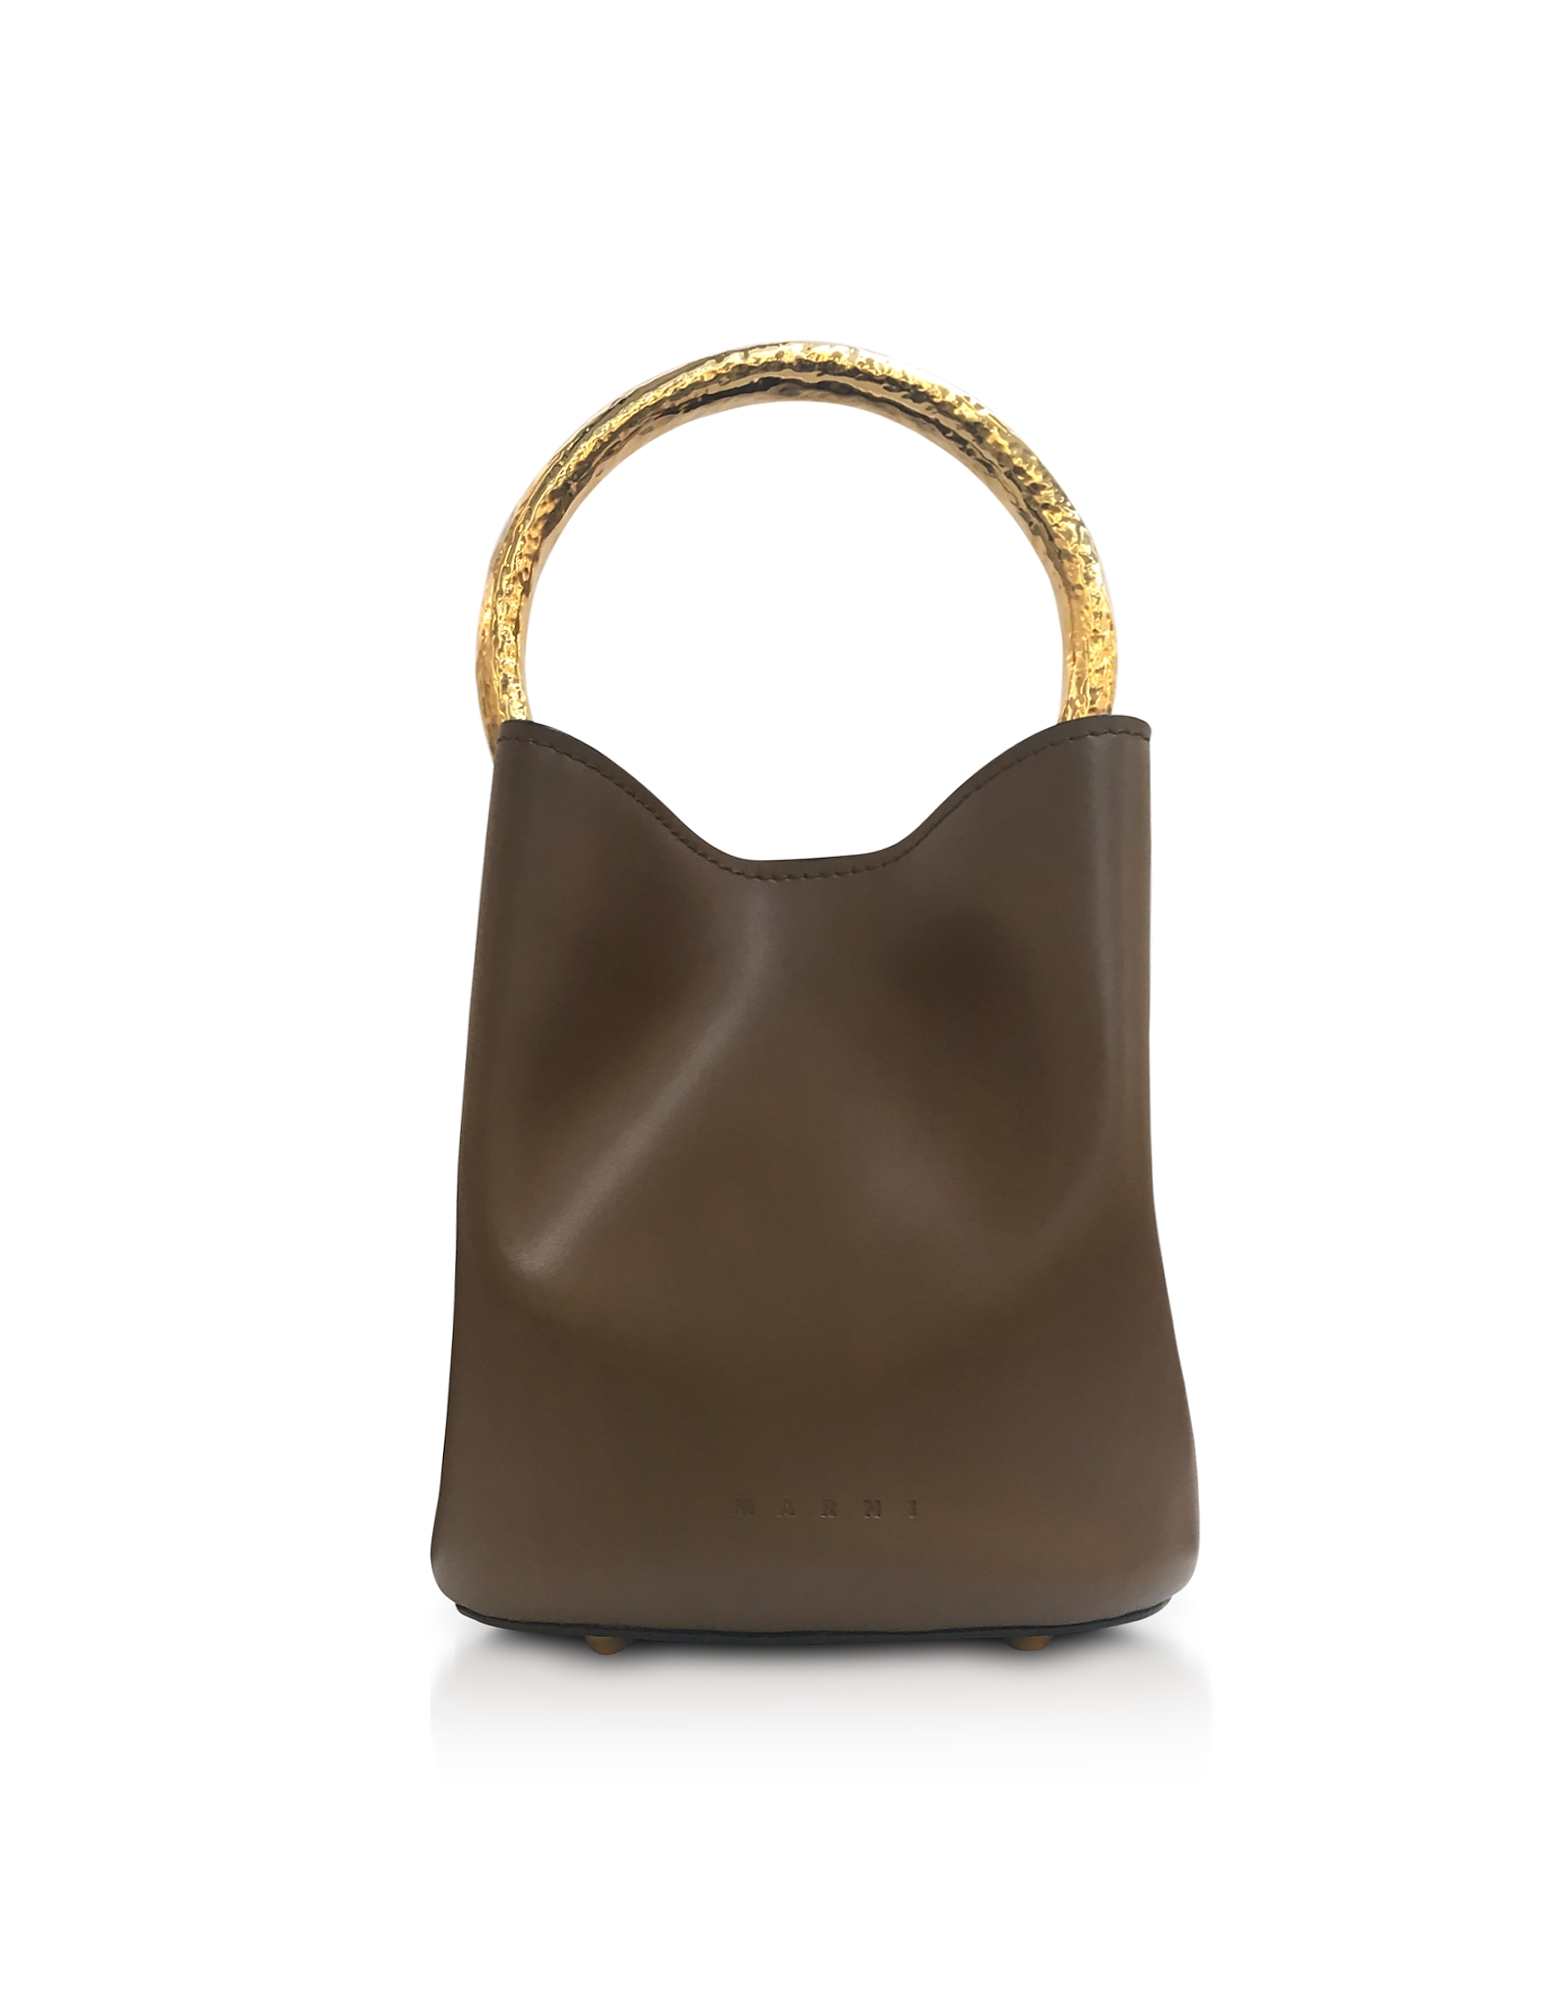 Pannier Leather Bucket Bag in Tobacco